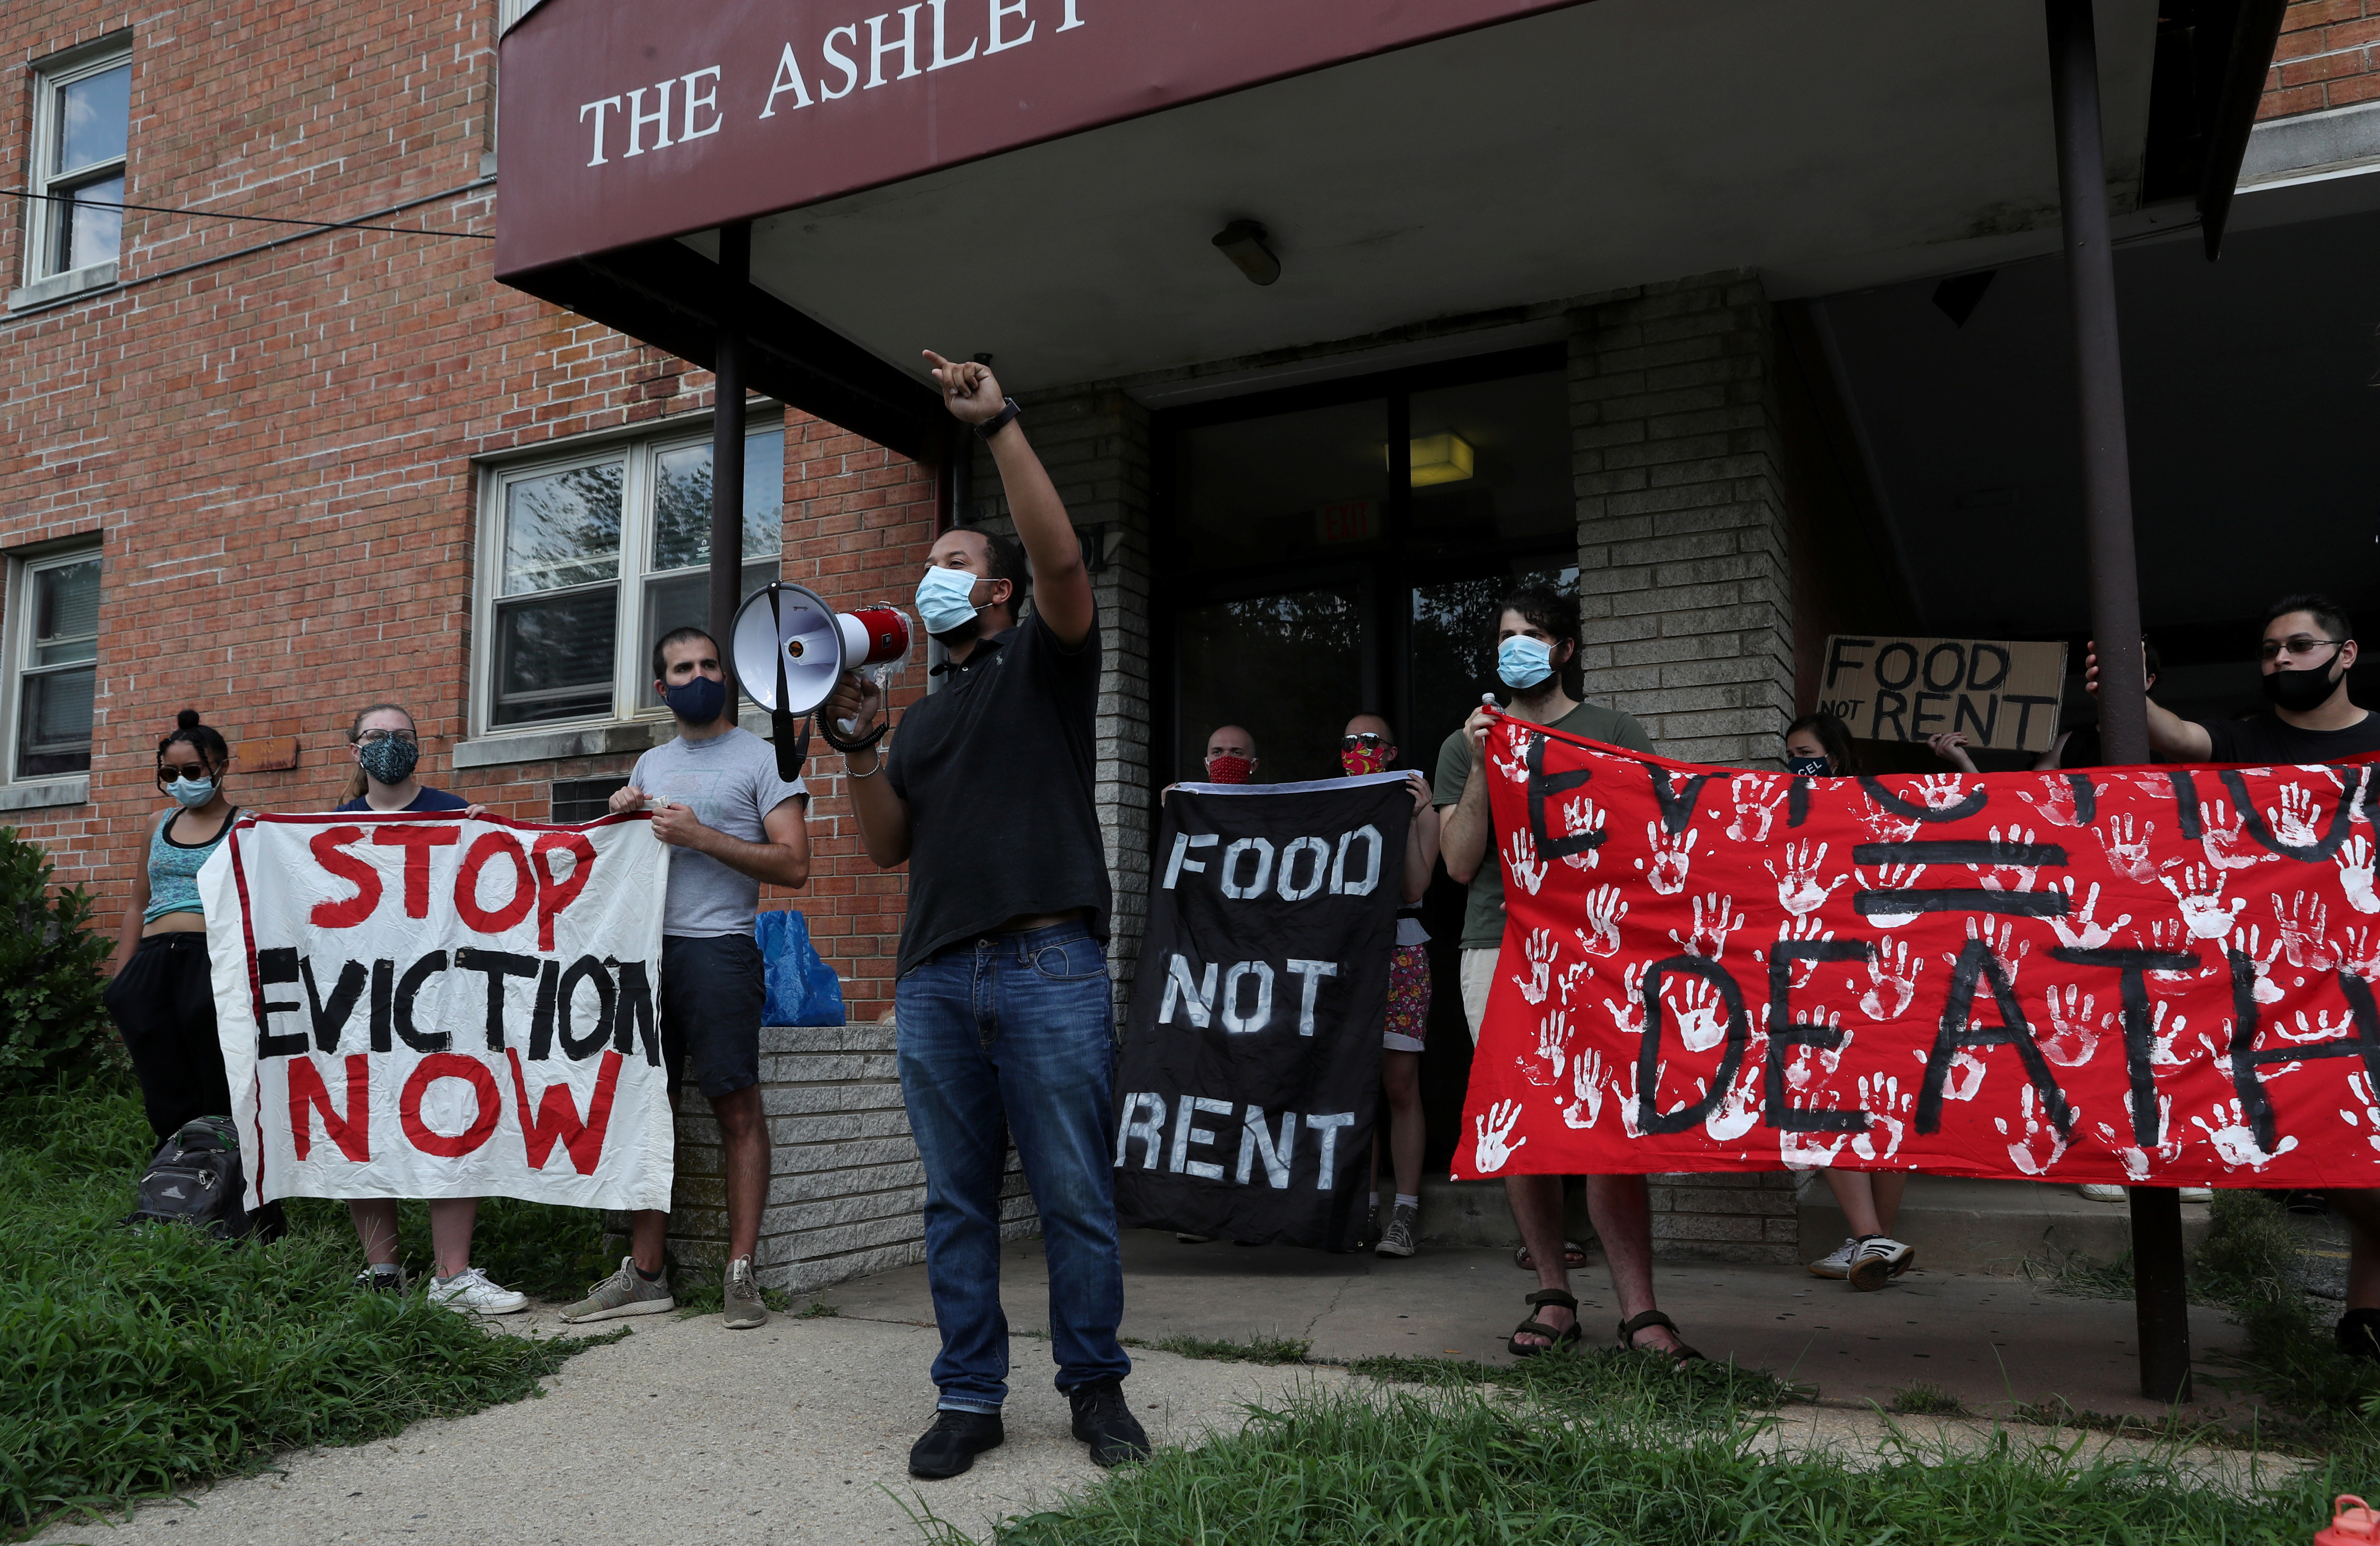 Maryland Rep Julian Ivey speaks out about evictions after gathering with others outside of an apartment complex with the intention to stop the alleged eviction of one of the tenants in Mount Rainier, MD, U.S., August 10, 2020. While Maryland remains under a State of Emergency, evictions are prohibited for tenants who are 'suffering substantial loss of income due to COVID-19'. Picture taken August 10, 2020. REUTERS/Leah Millis - RC2KCI92EWNL